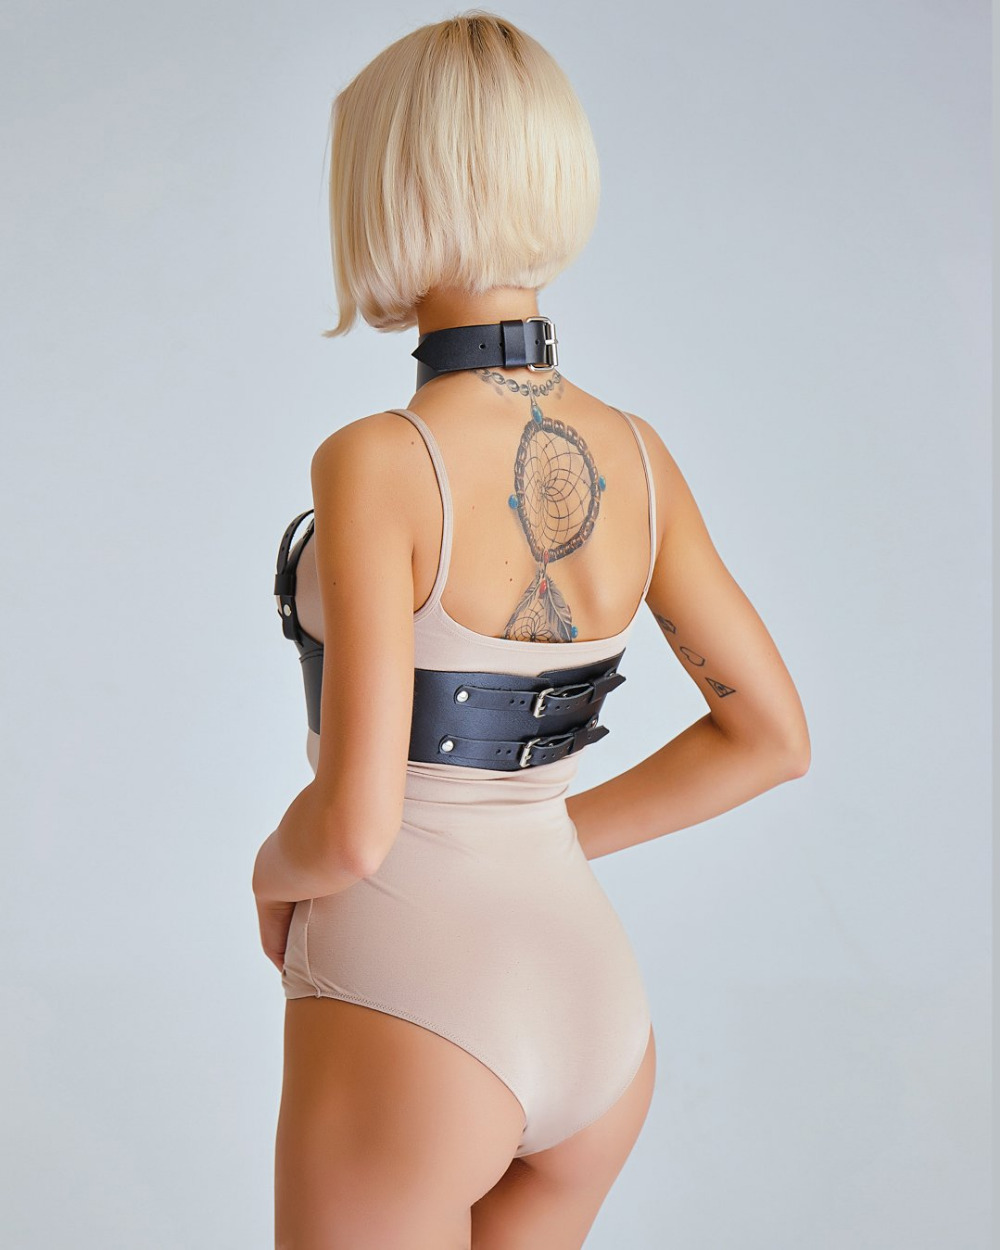 dr_harness11200_2048x2048